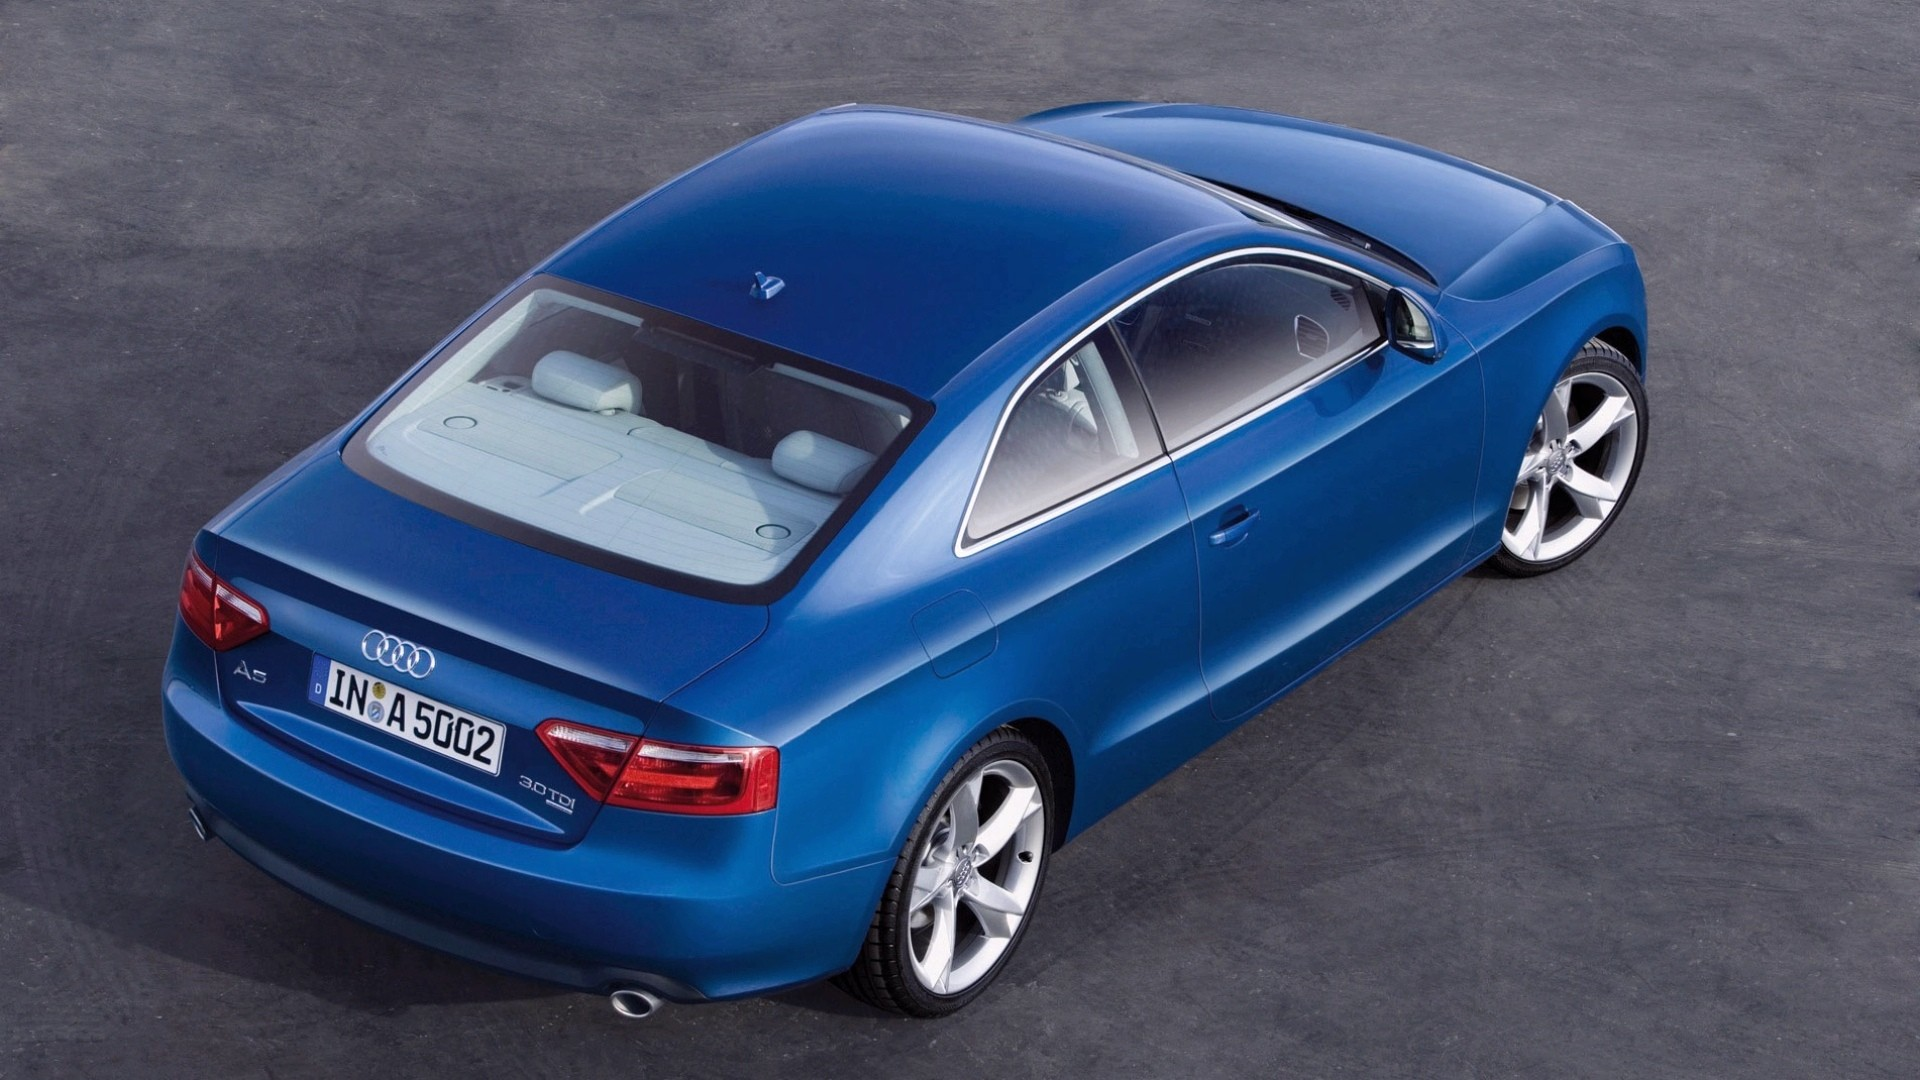 cars audi a4 German HD Wallpaper